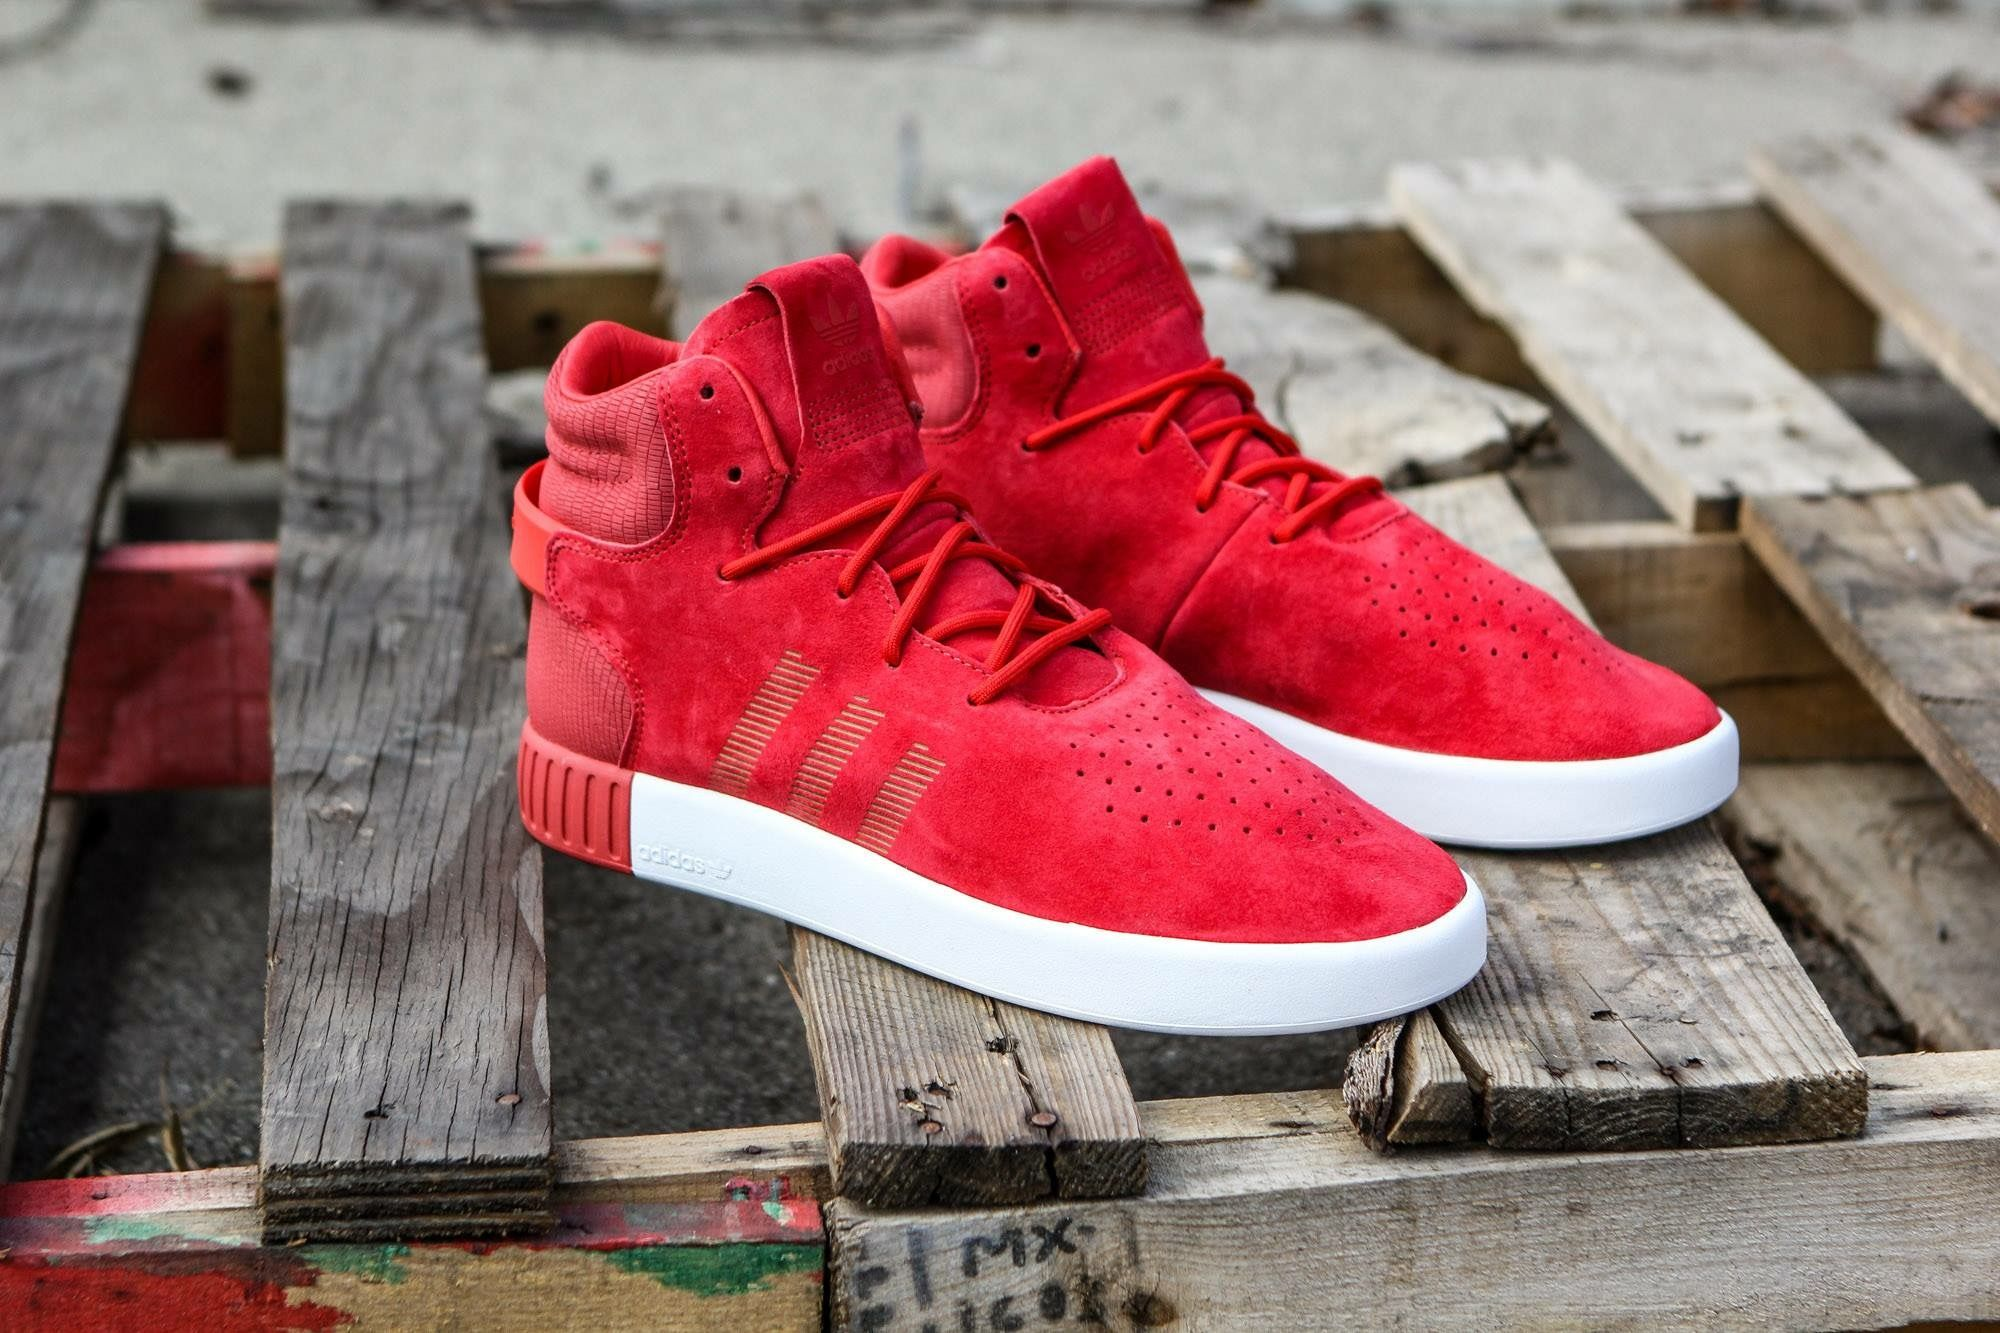 timeless design e1295 08ab0 adidas Originals Tubular Invader: Red | Adidas in 2019 ...